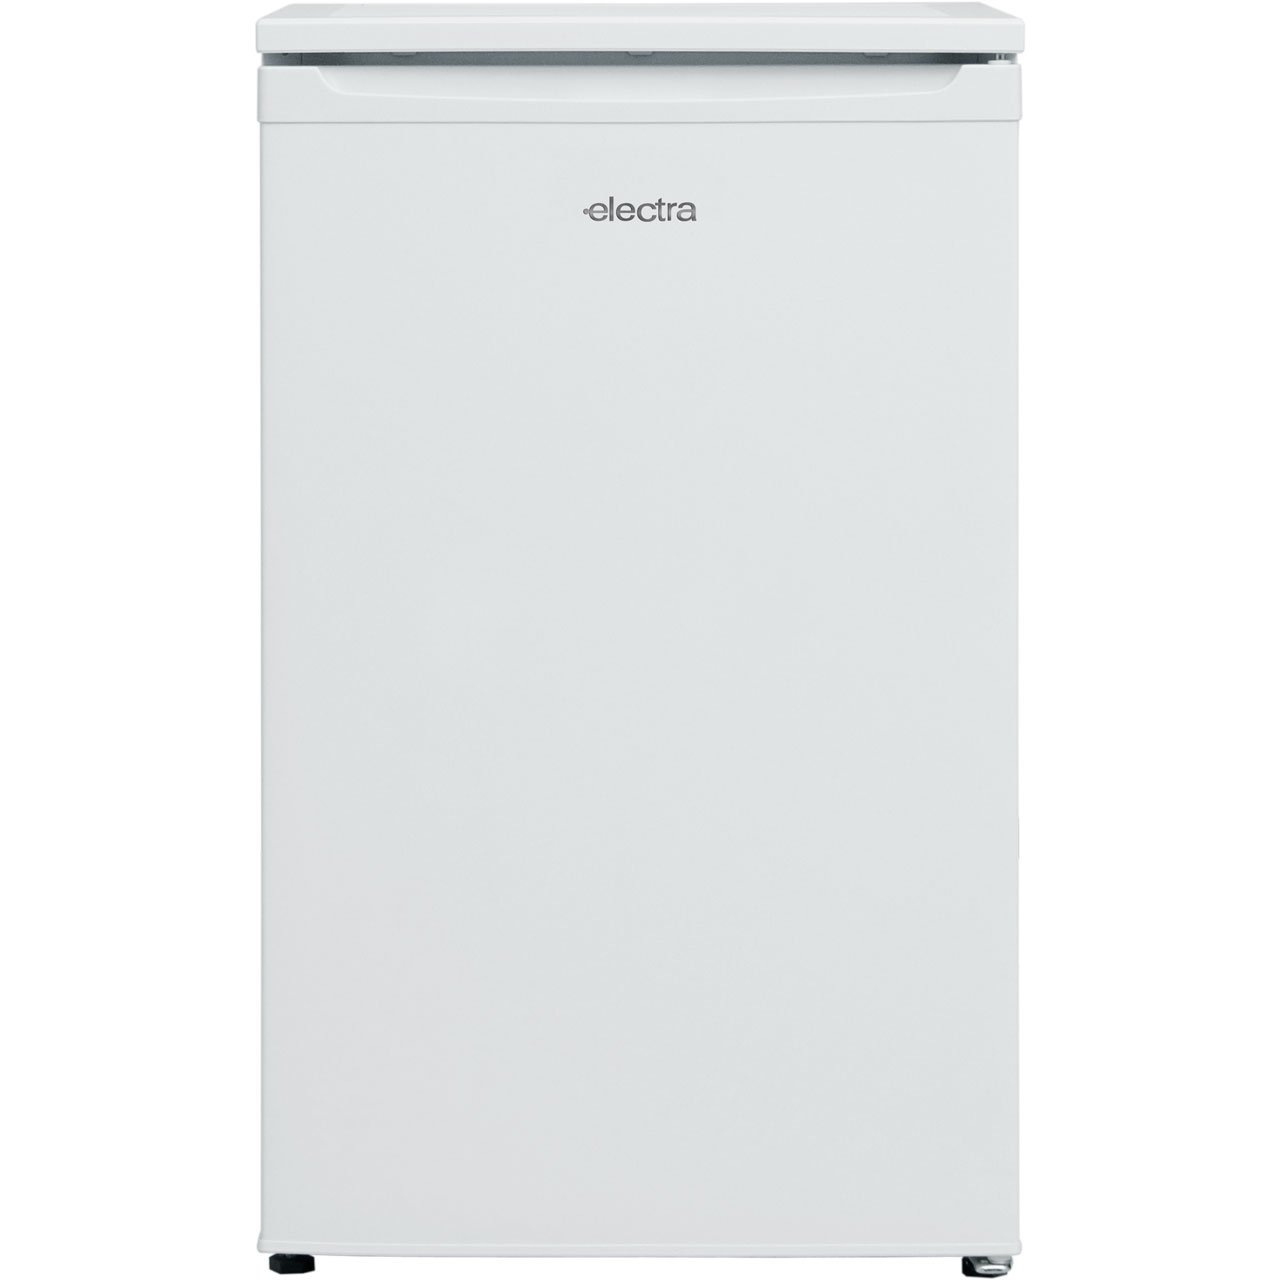 Electra EFUZ48W Freestanding A+ Rated Freezer in White Vestel